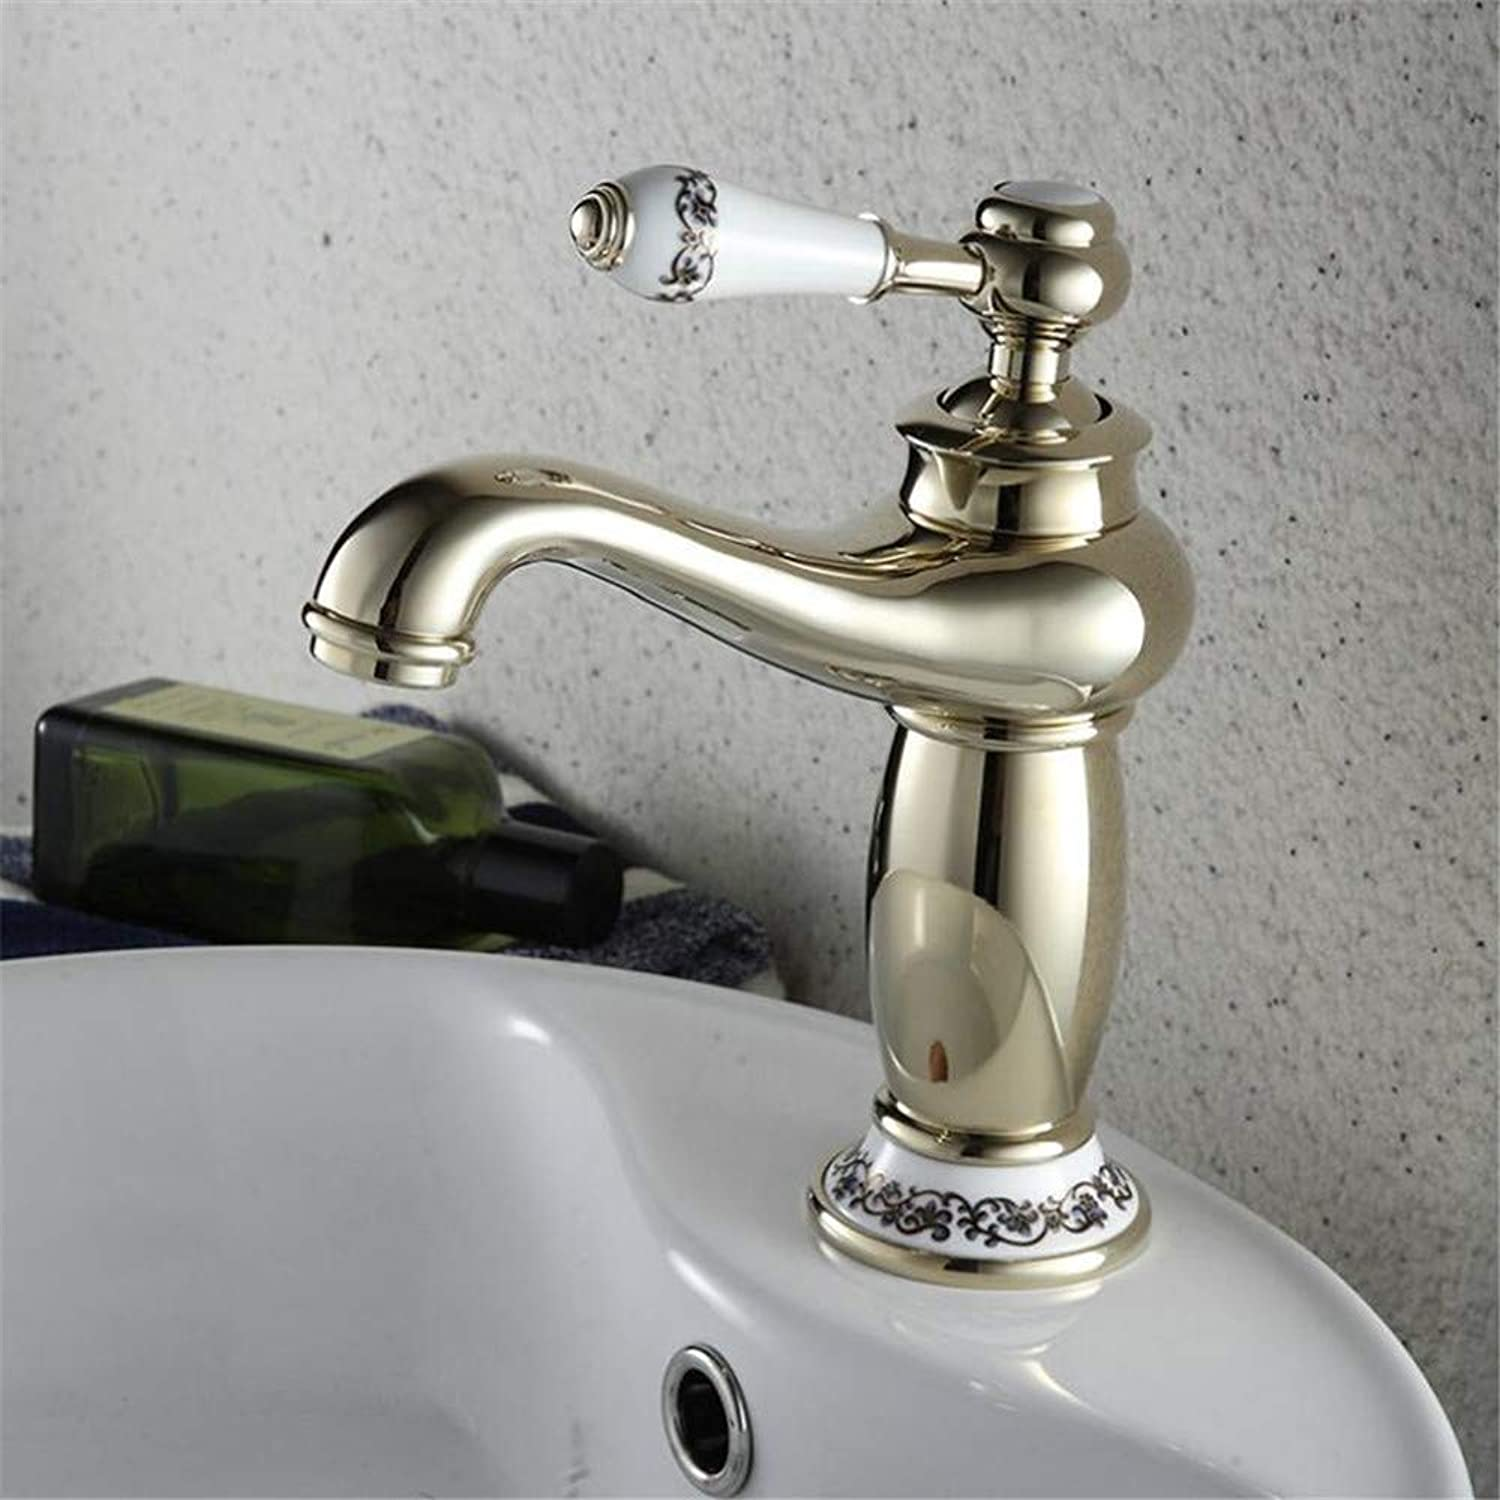 360° redating Faucet Retro Faucetbasin Mixer Tap Fashion Classic Faucet Hot and Cold Copper European Retro Faucet